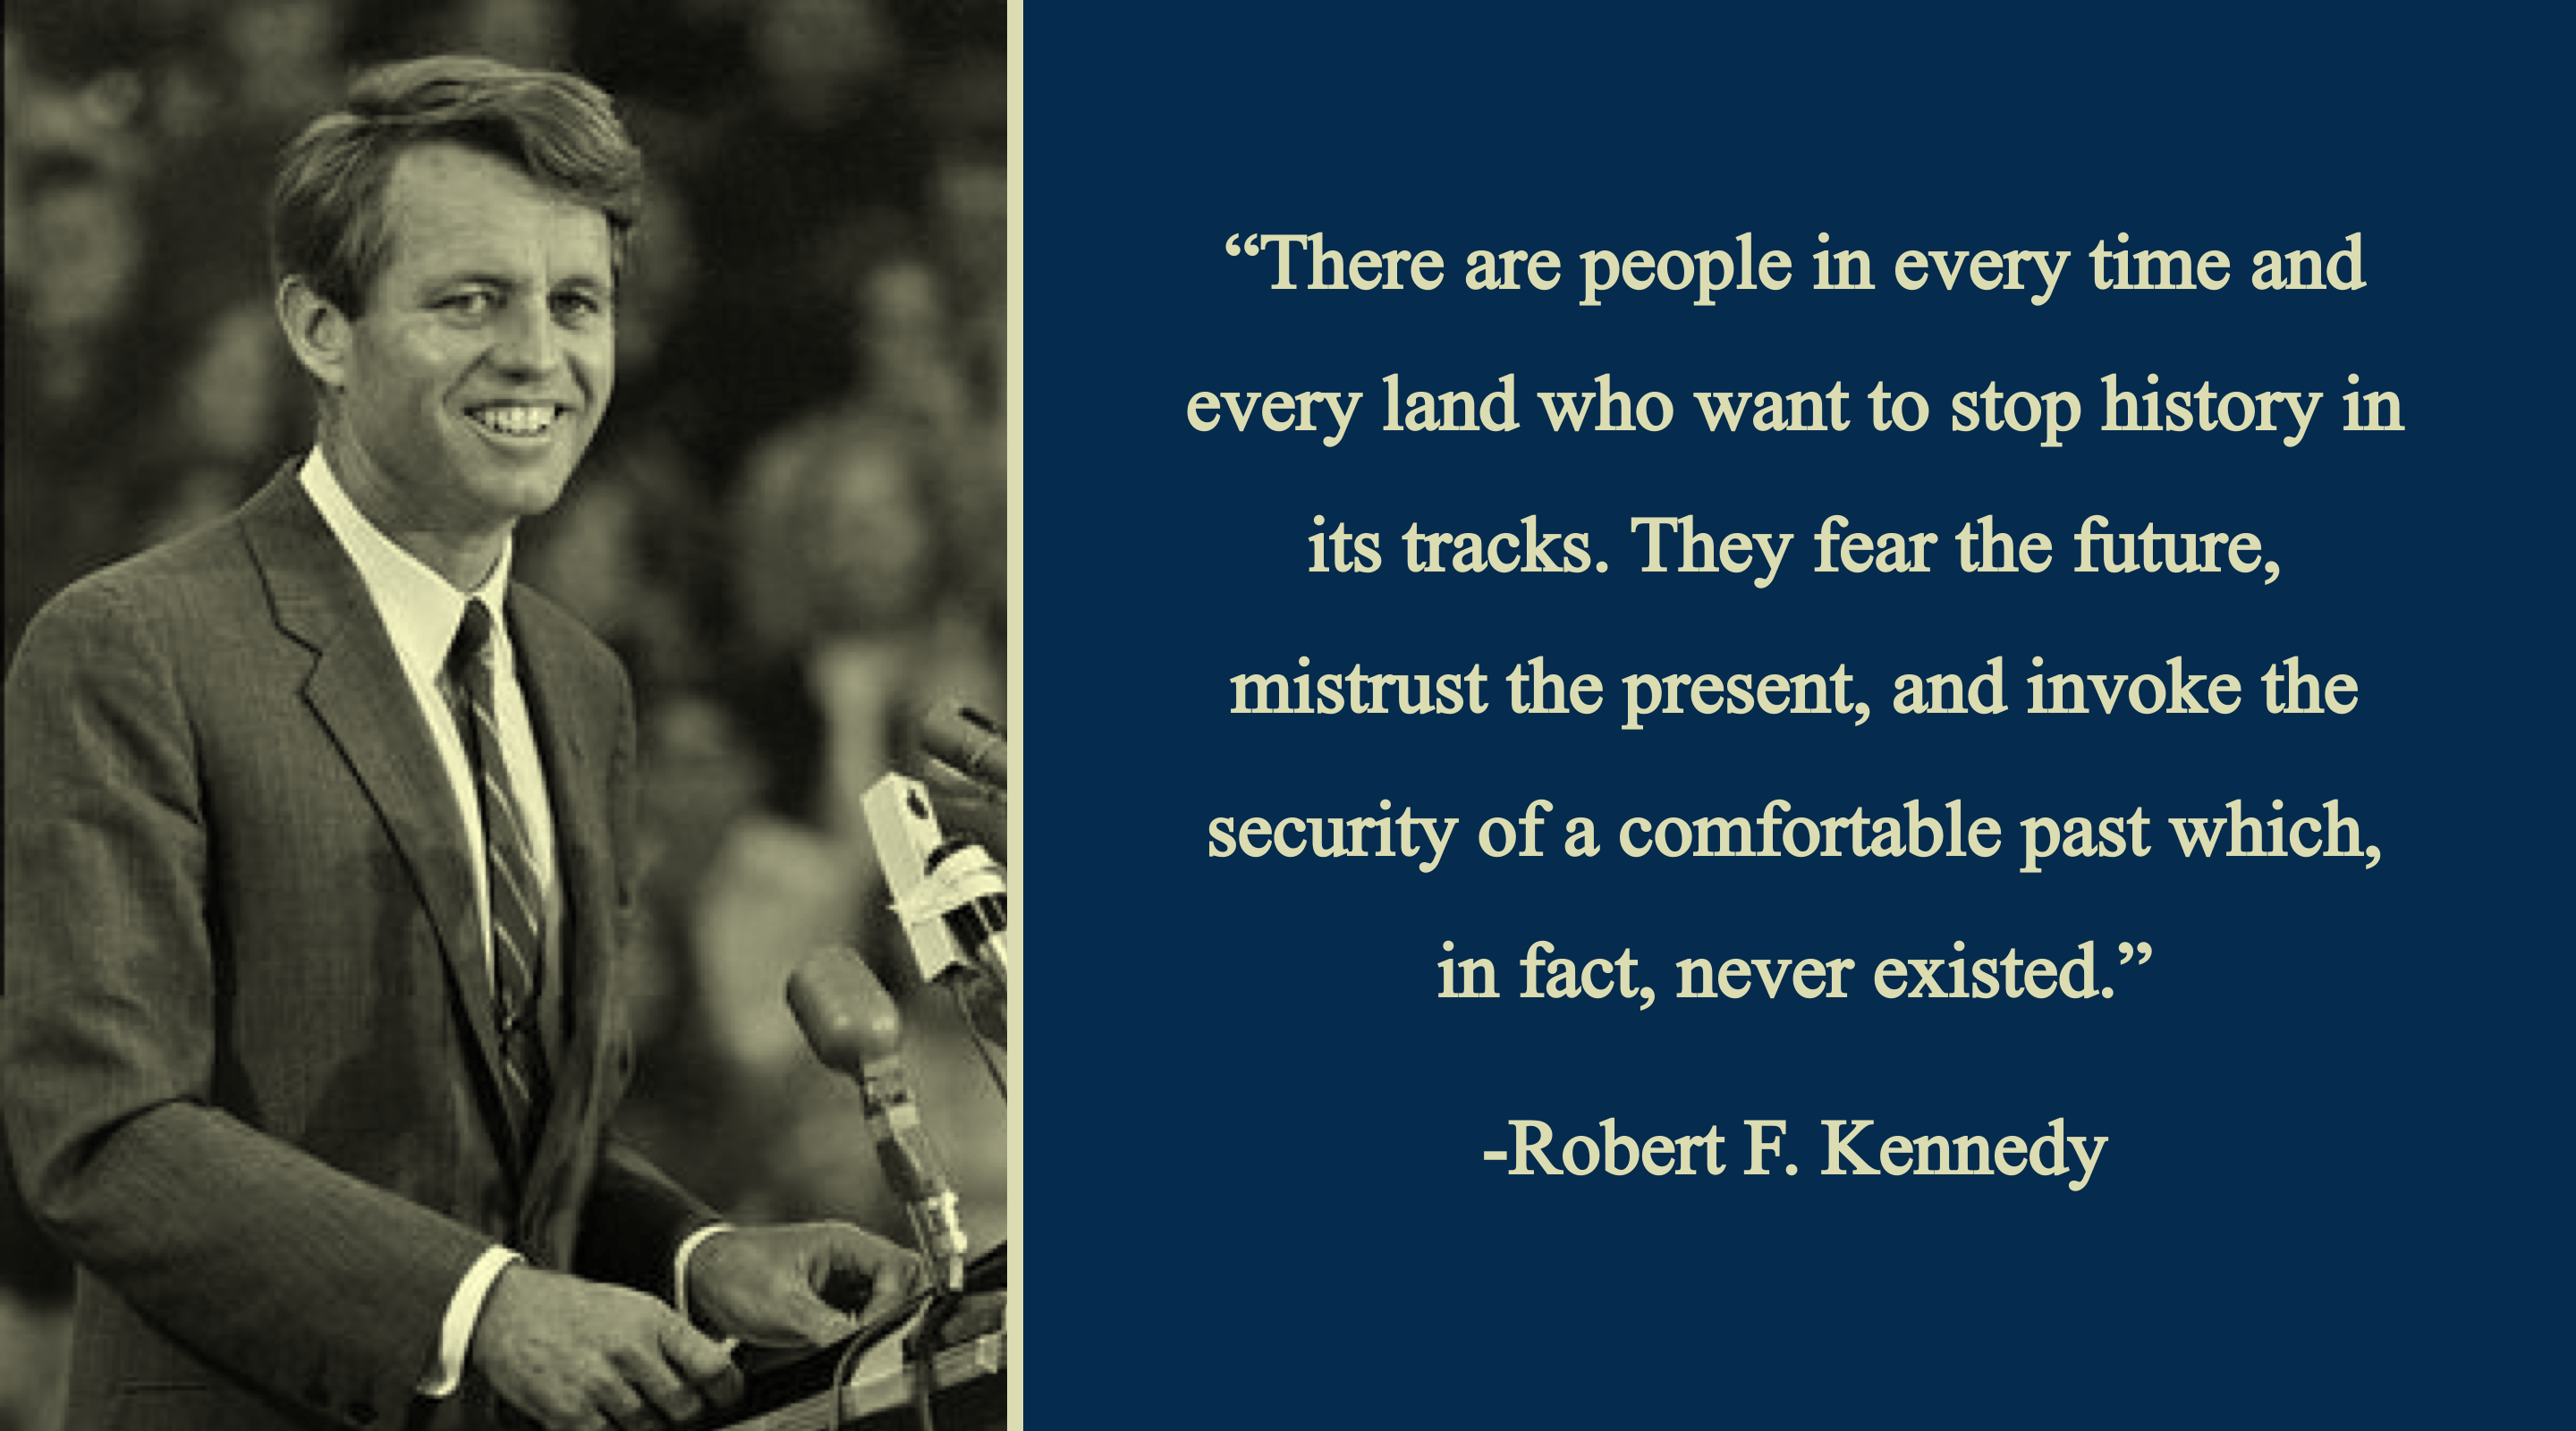 """There are people in every time and every land…"" -Robert F. Kennedy [2880×1600]"